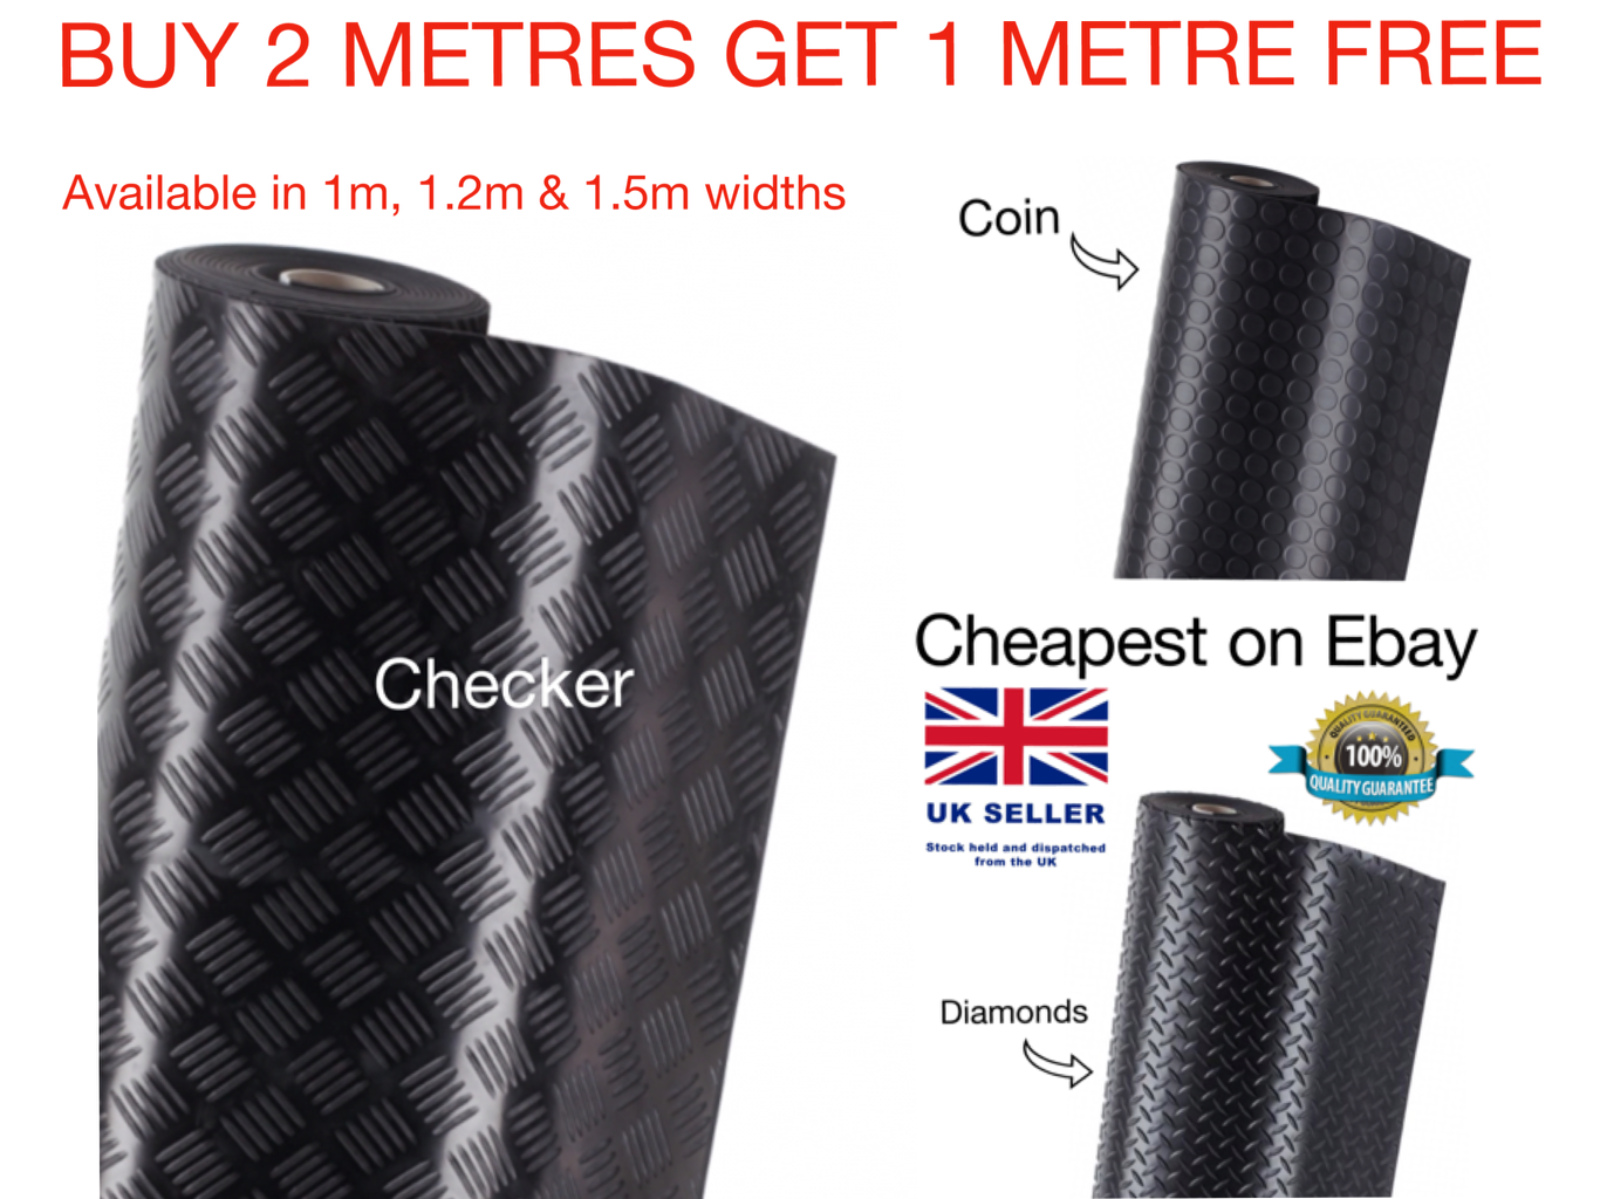 Car Parts - 3mm Rubber Matting Flooring Heavy Duty Floor Garage Van kennel 1m 1.2m & 1.5m